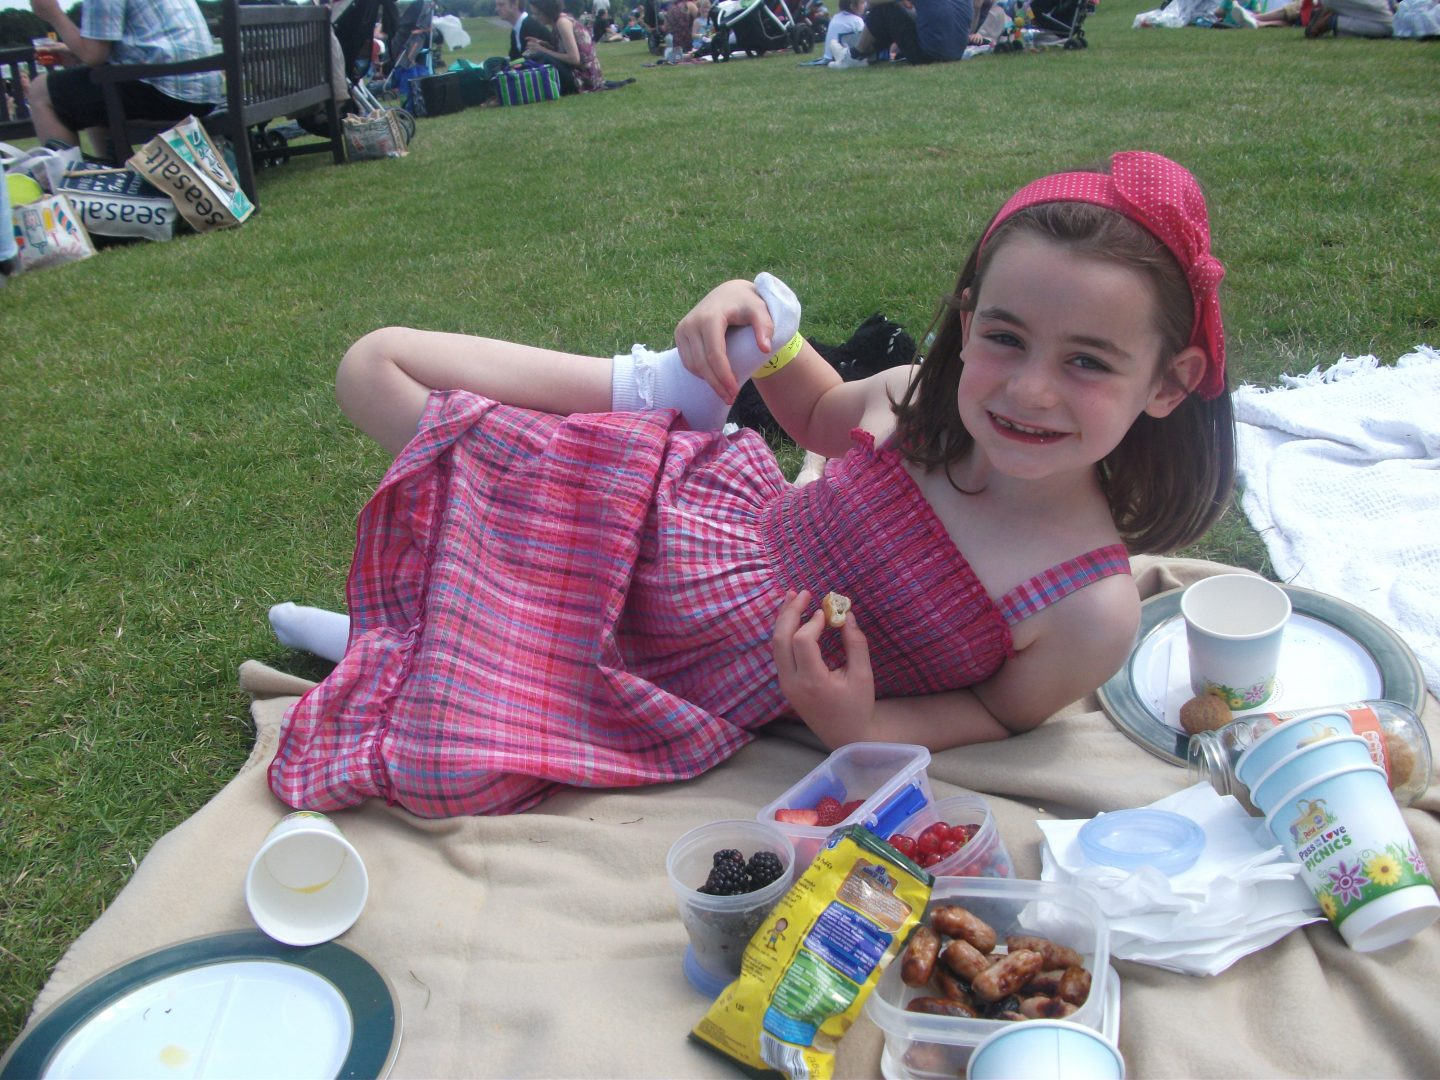 Being Seven, and living with Type 1 Diabetes